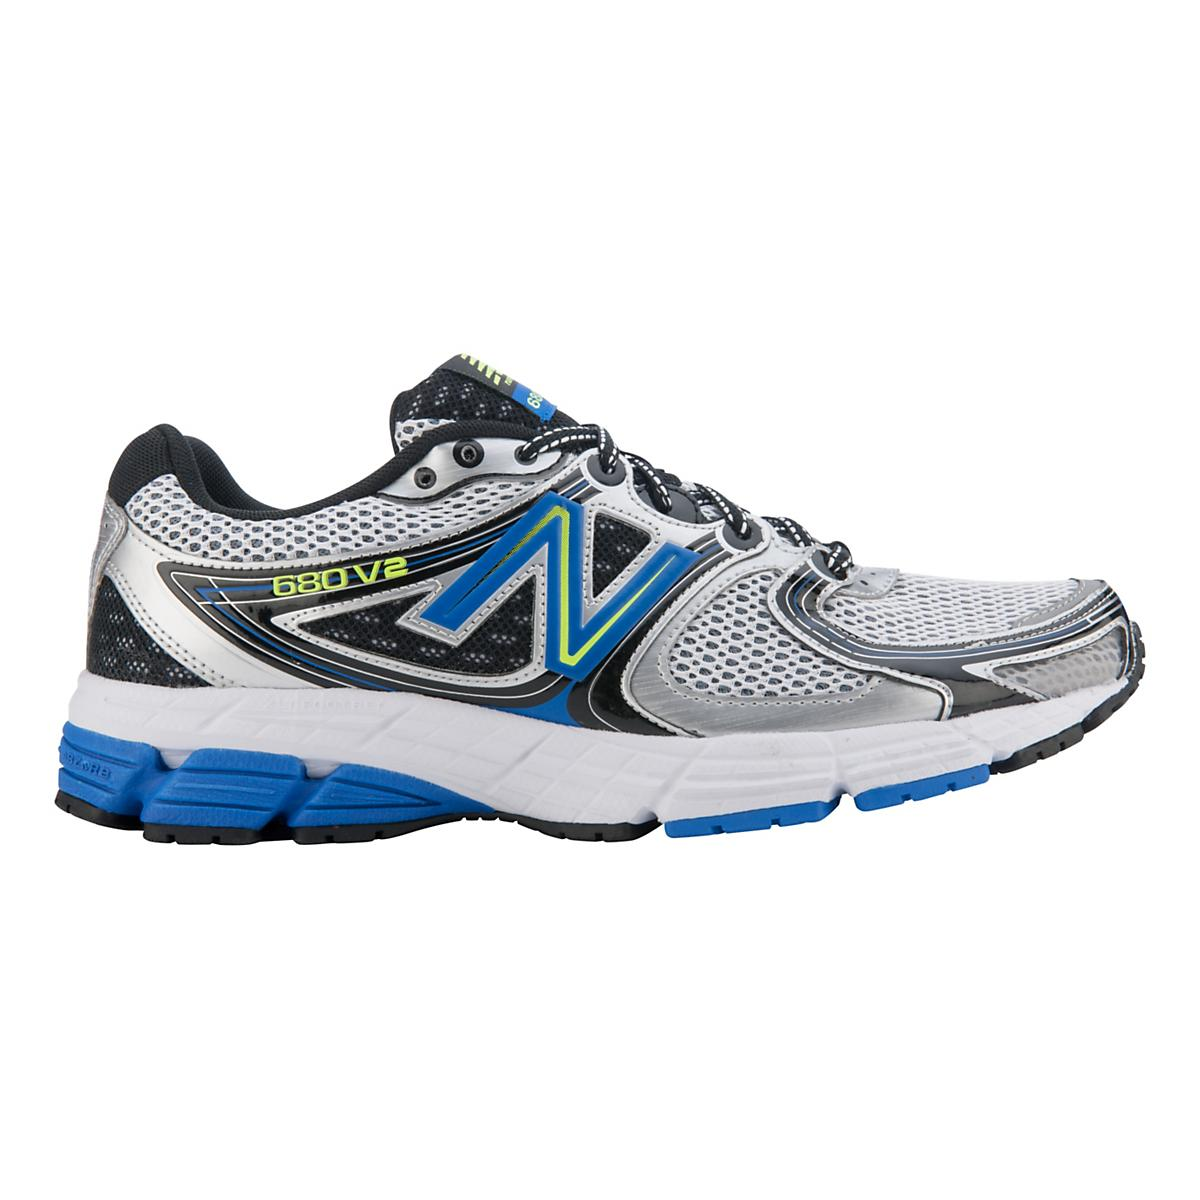 newest collection 2637a d125c Mens New Balance 680v2 Running Shoe at Road Runner Sports